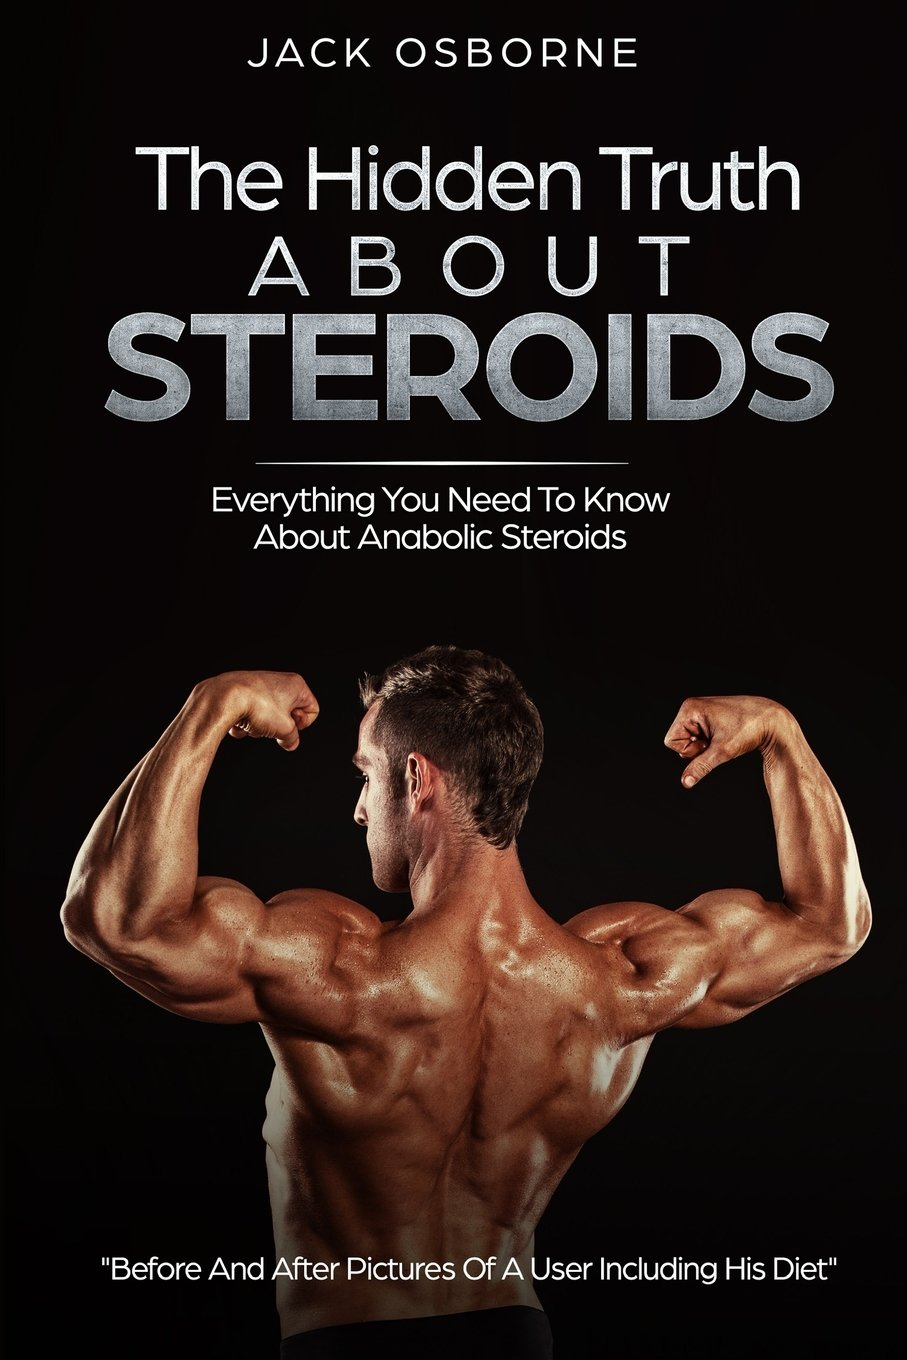 The steroid bible steve gallaway free download types of non steroid hormones